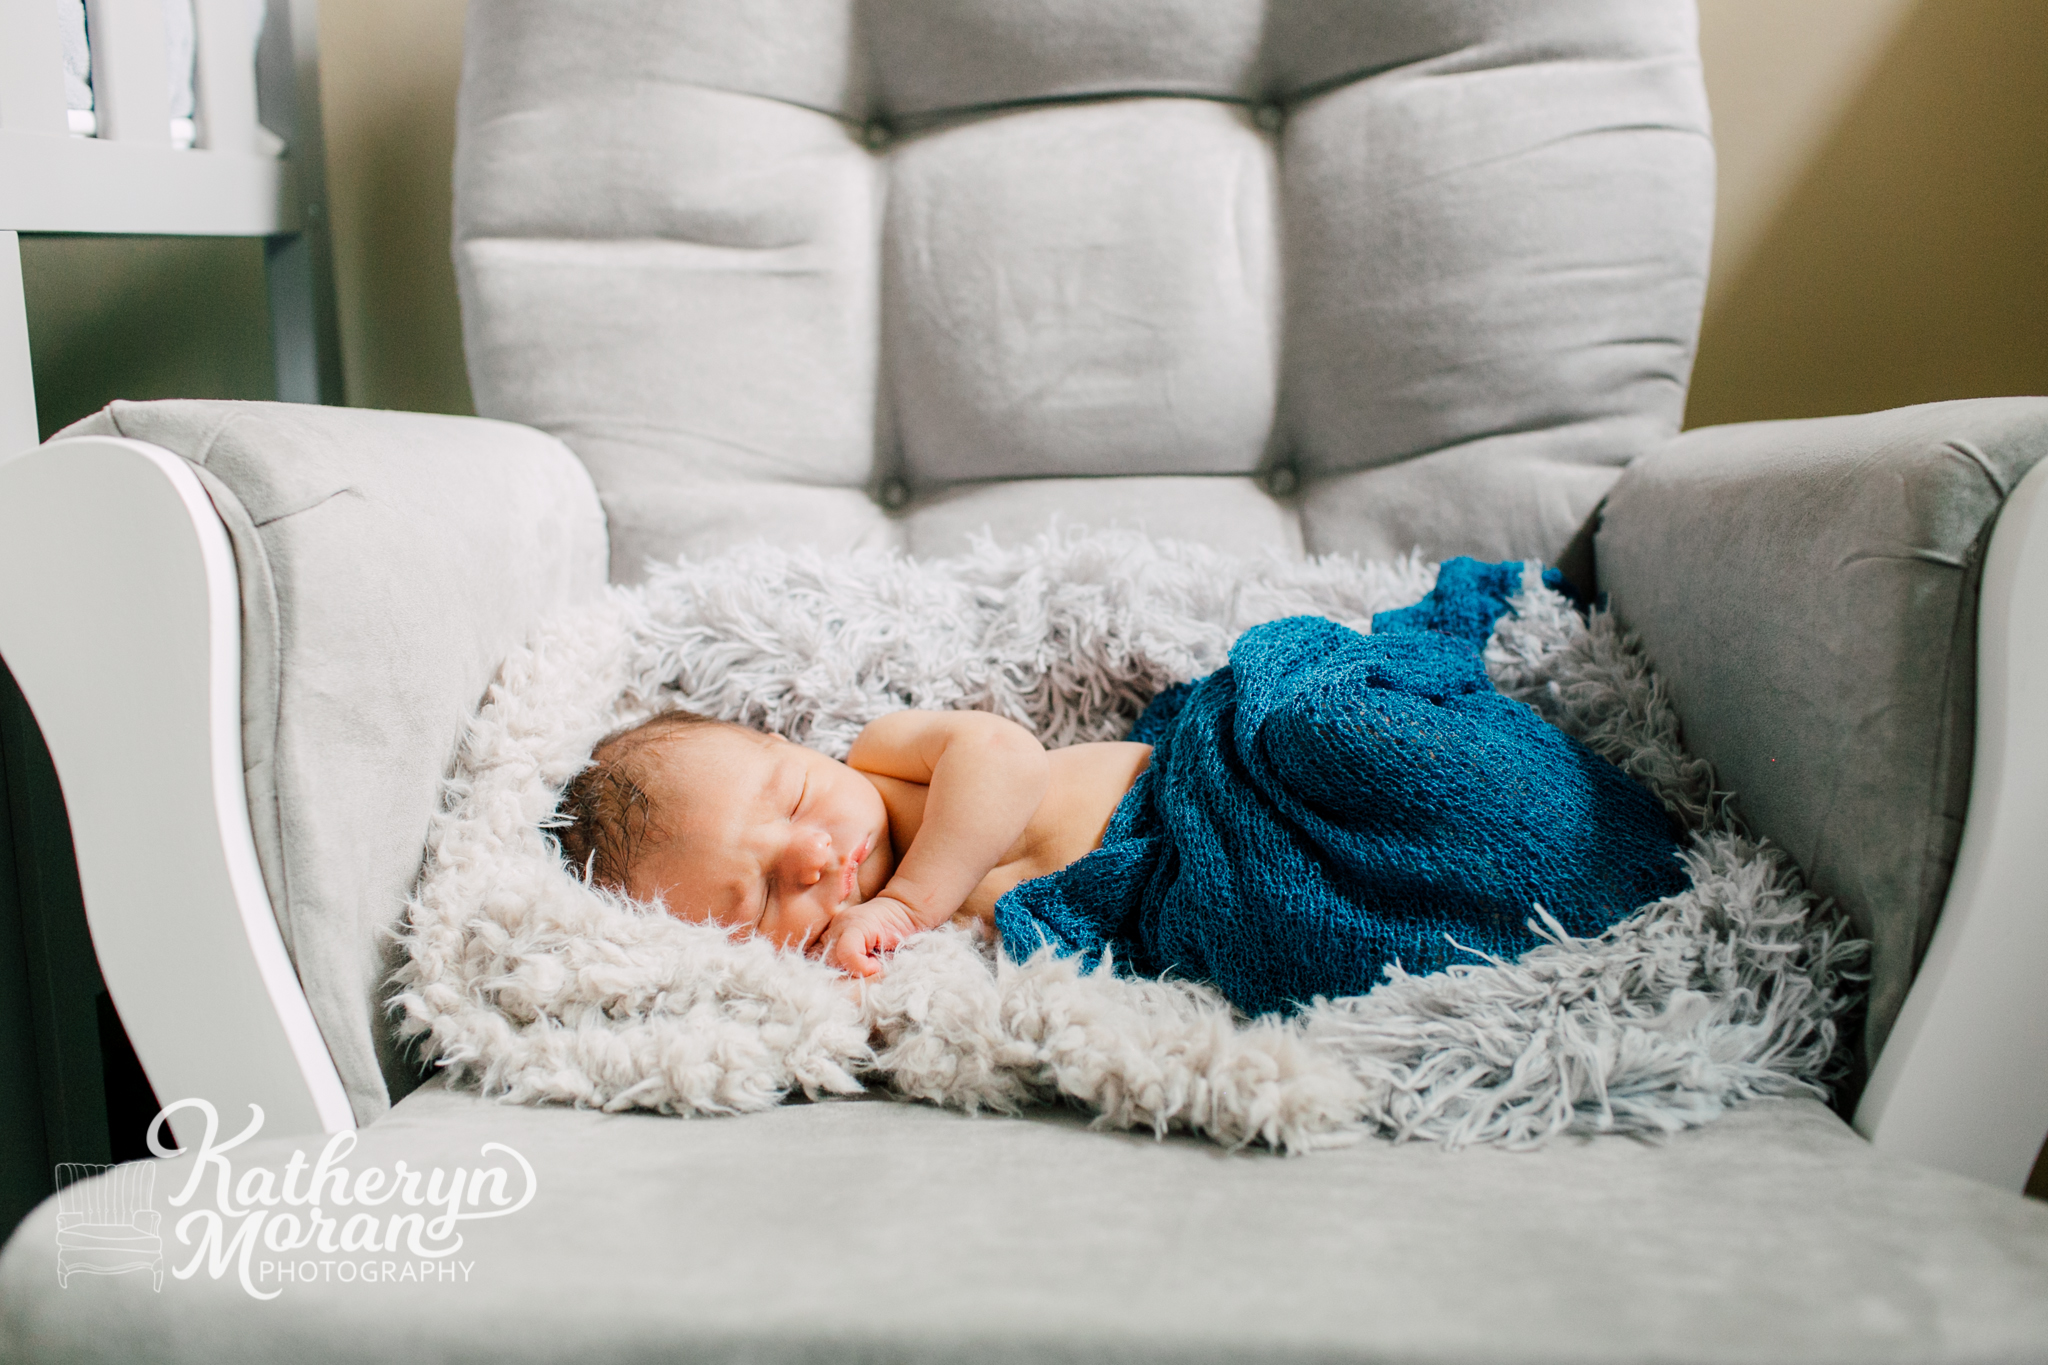 seattle-newborn-photographer-katheryn-moran-baby-leo-2.jpg